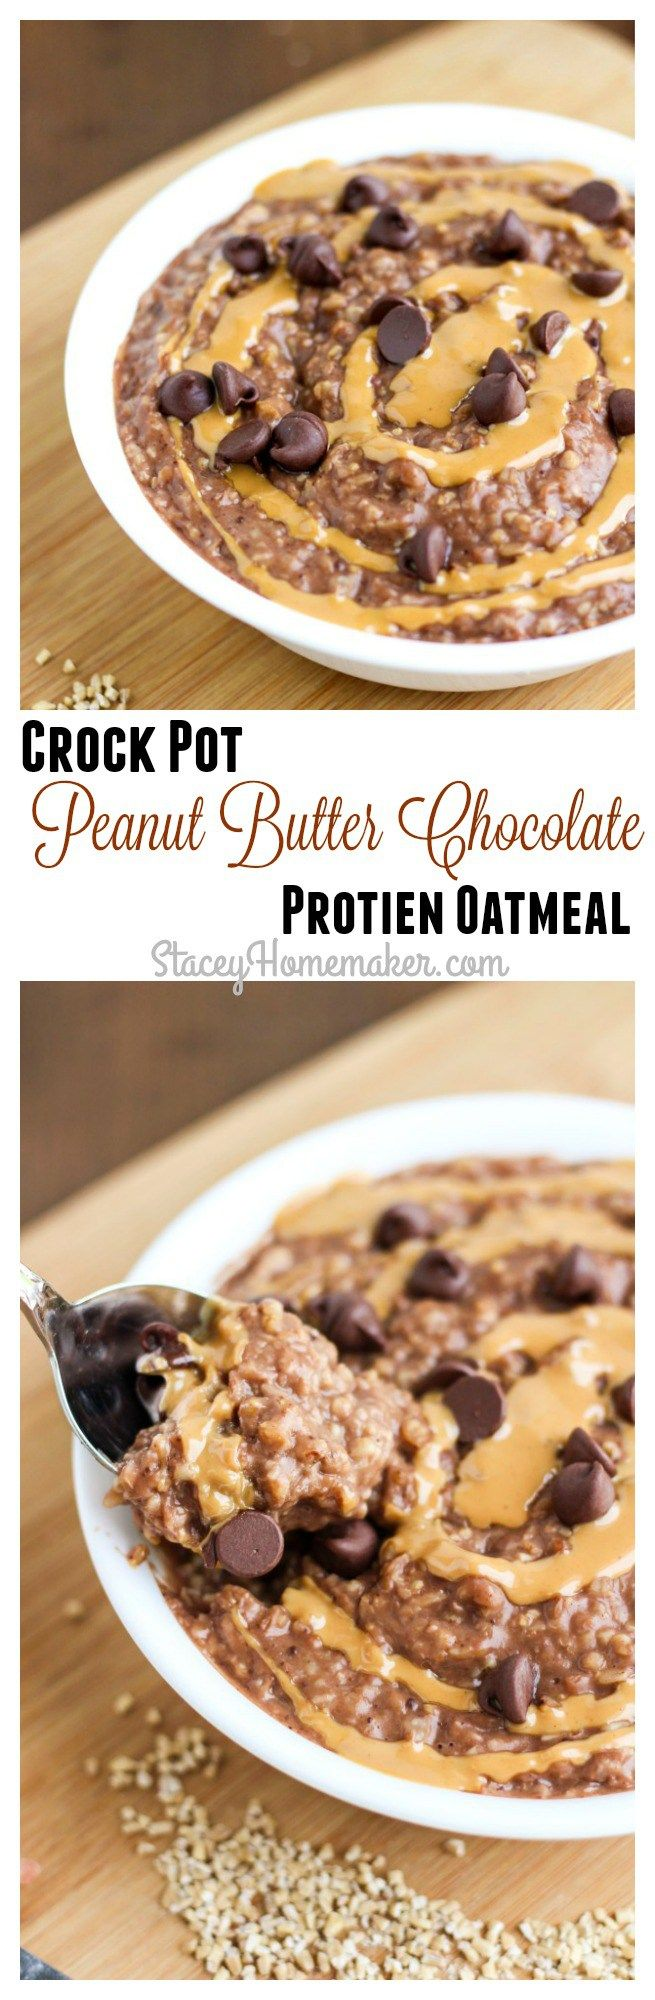 best 17 oatmeal images on pinterest | breakfast, kitchens and